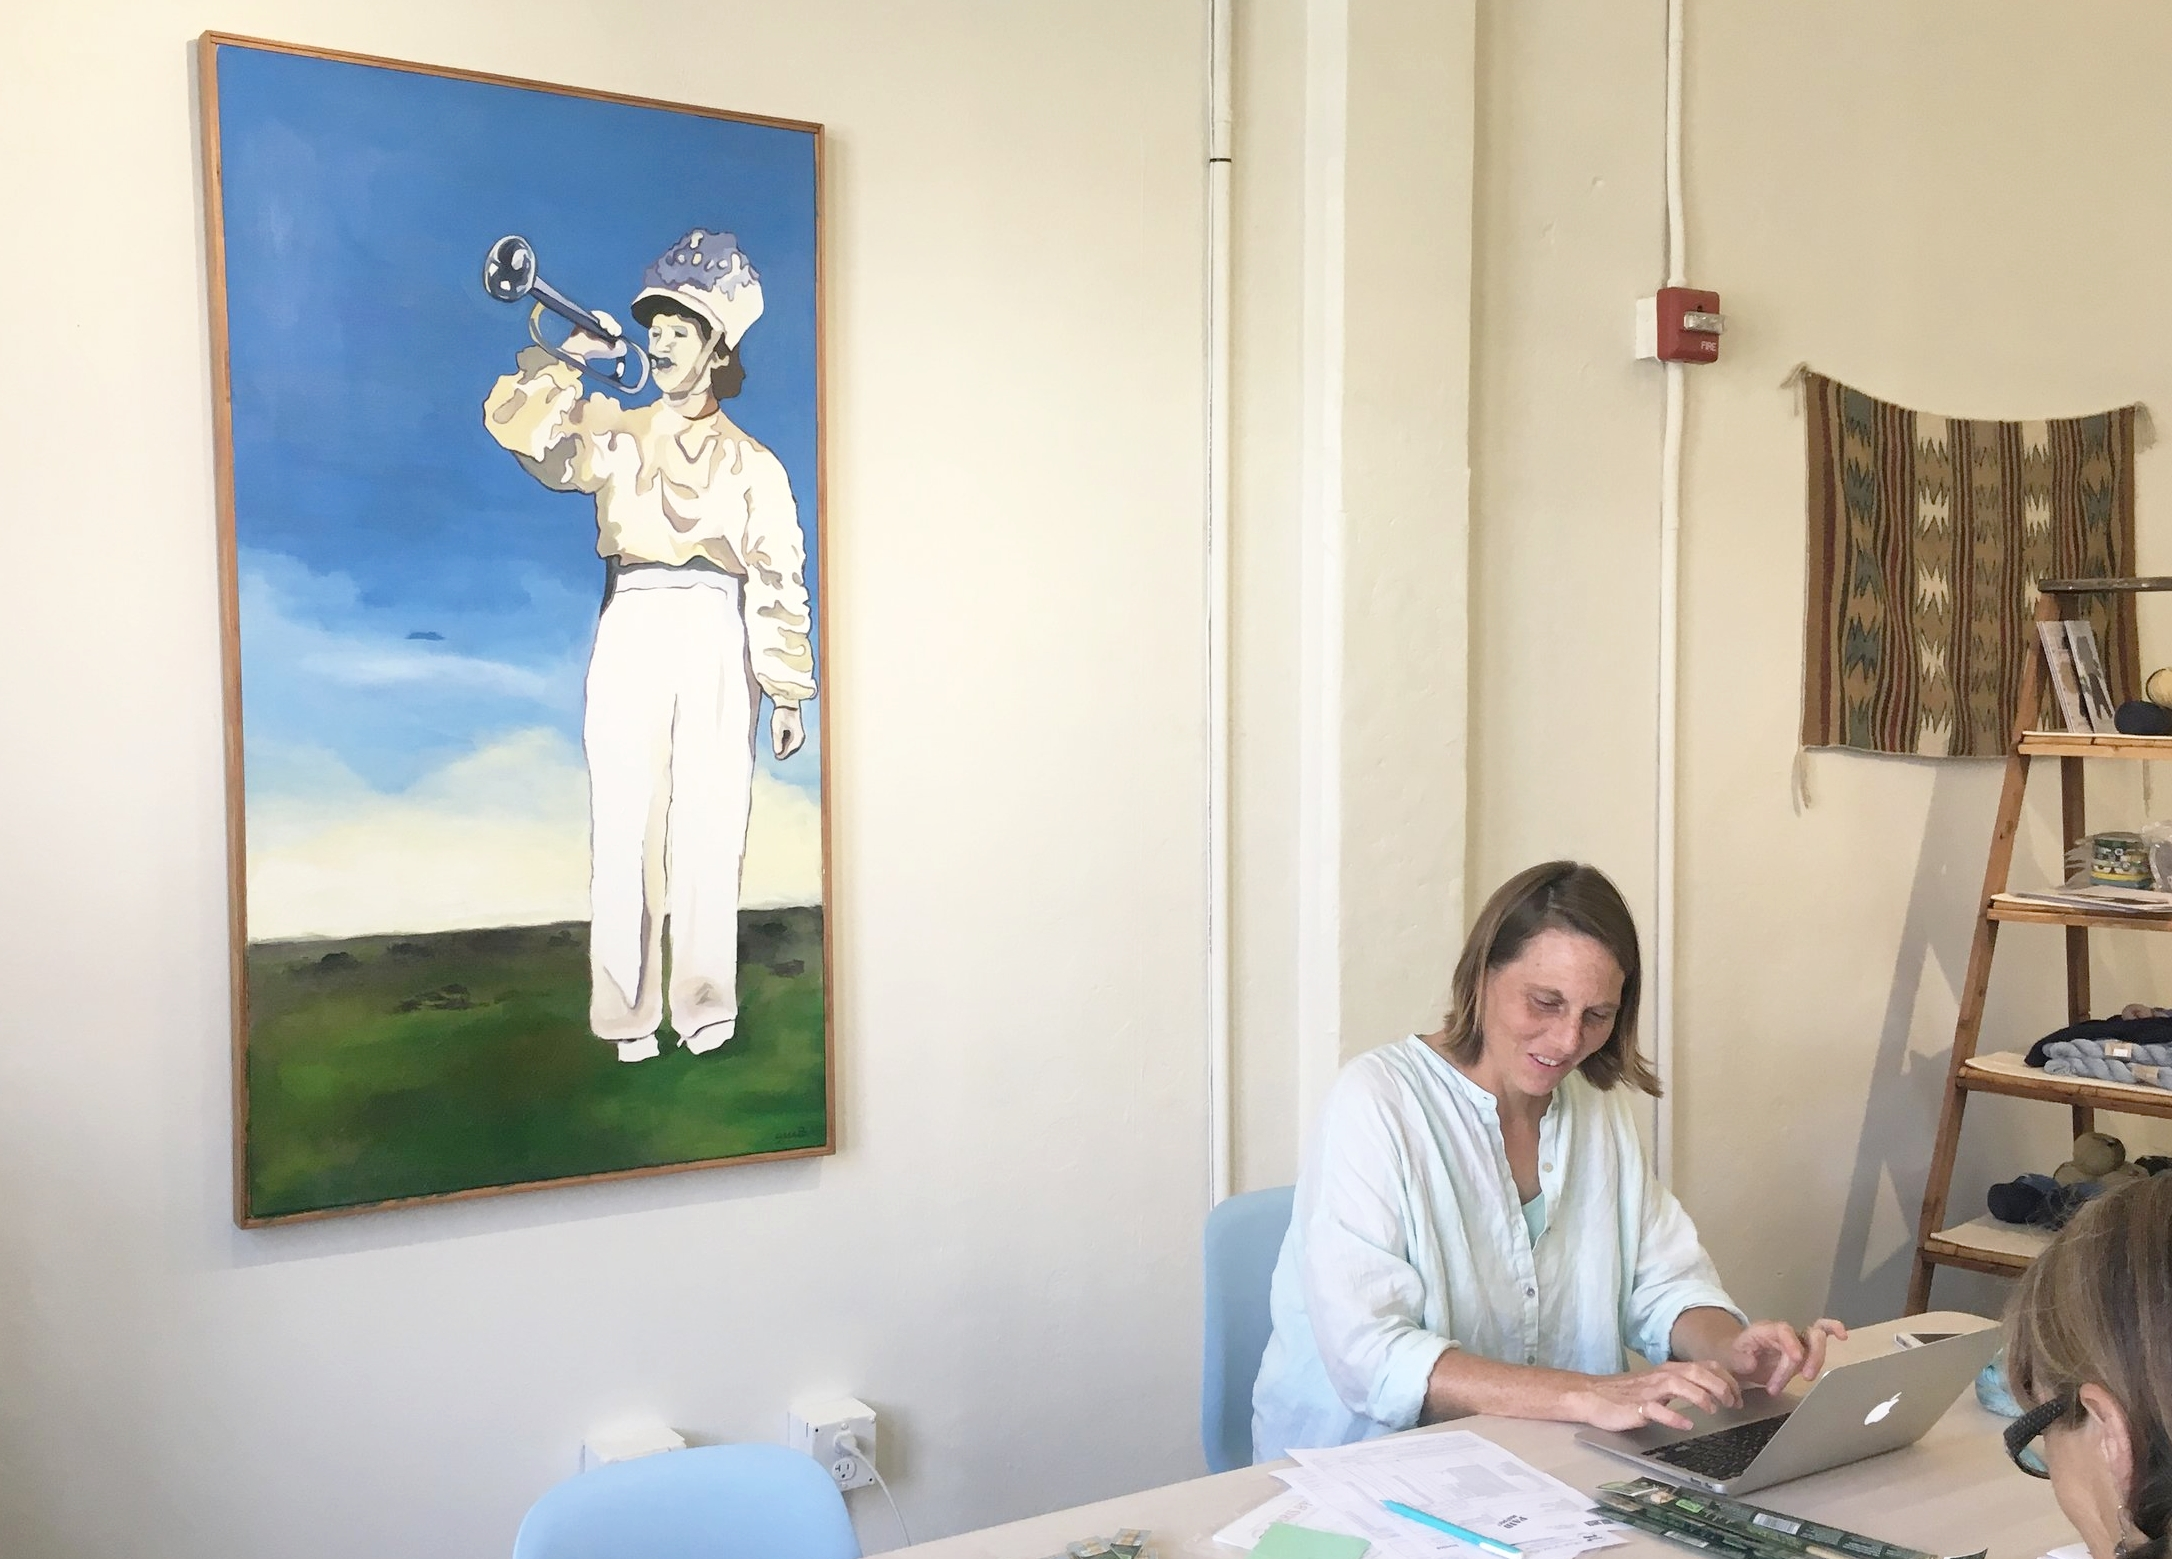 Sara Heckman, owner,sitting beside one of her paintings.The work was inspired by a vintage photograph of a girl in her band uniform on the front lawn of her house.